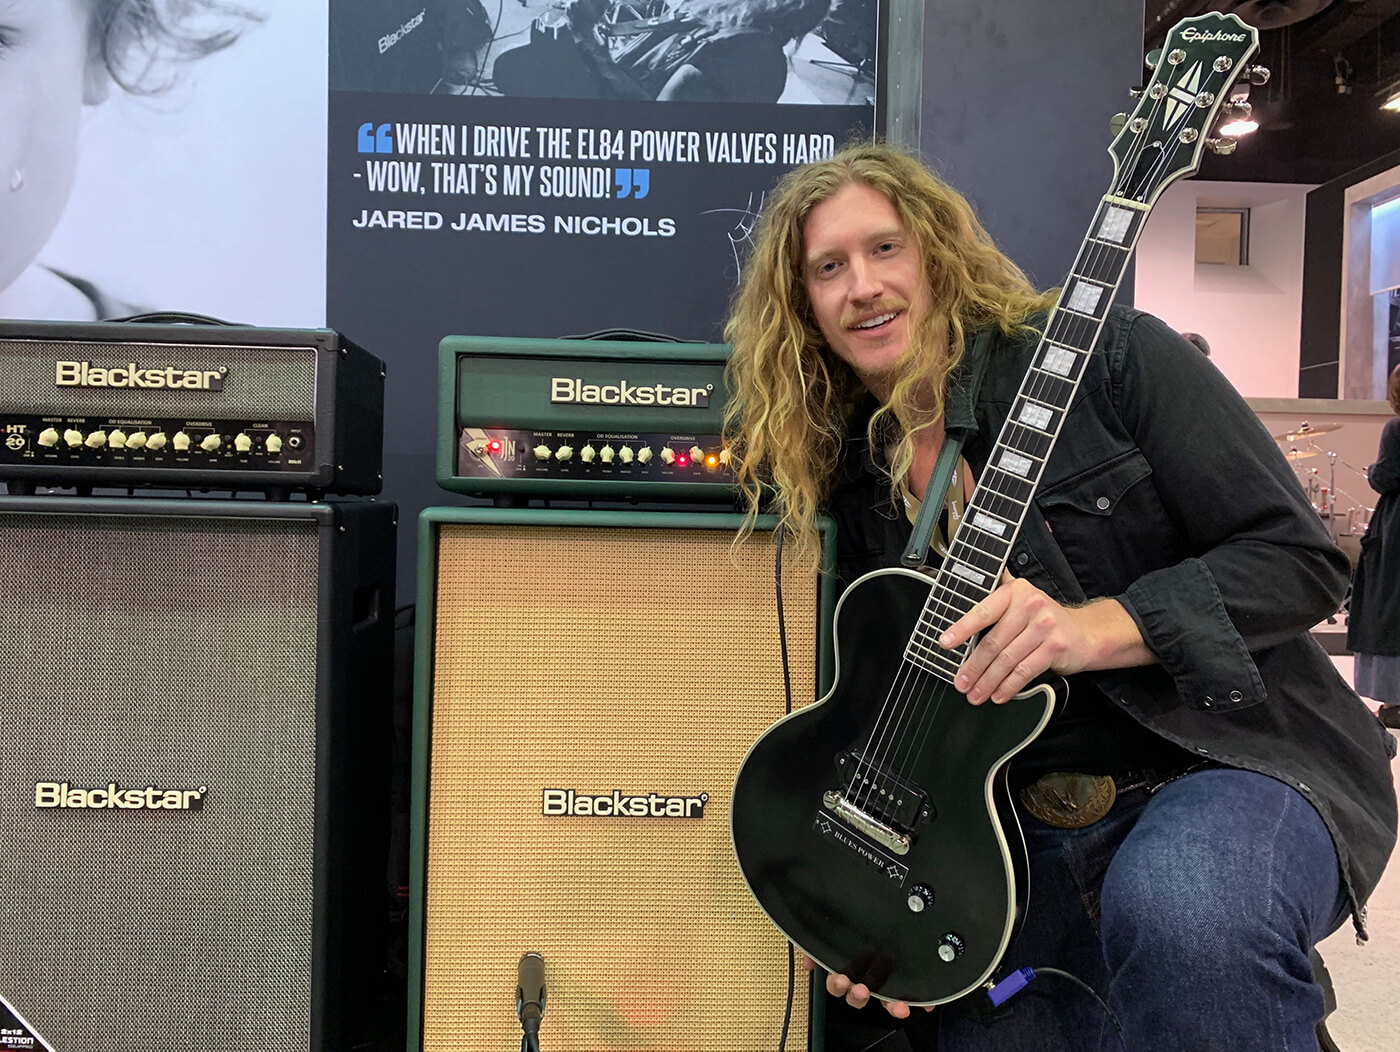 Blackstar Jared James Nichols JJN-20RH MkII